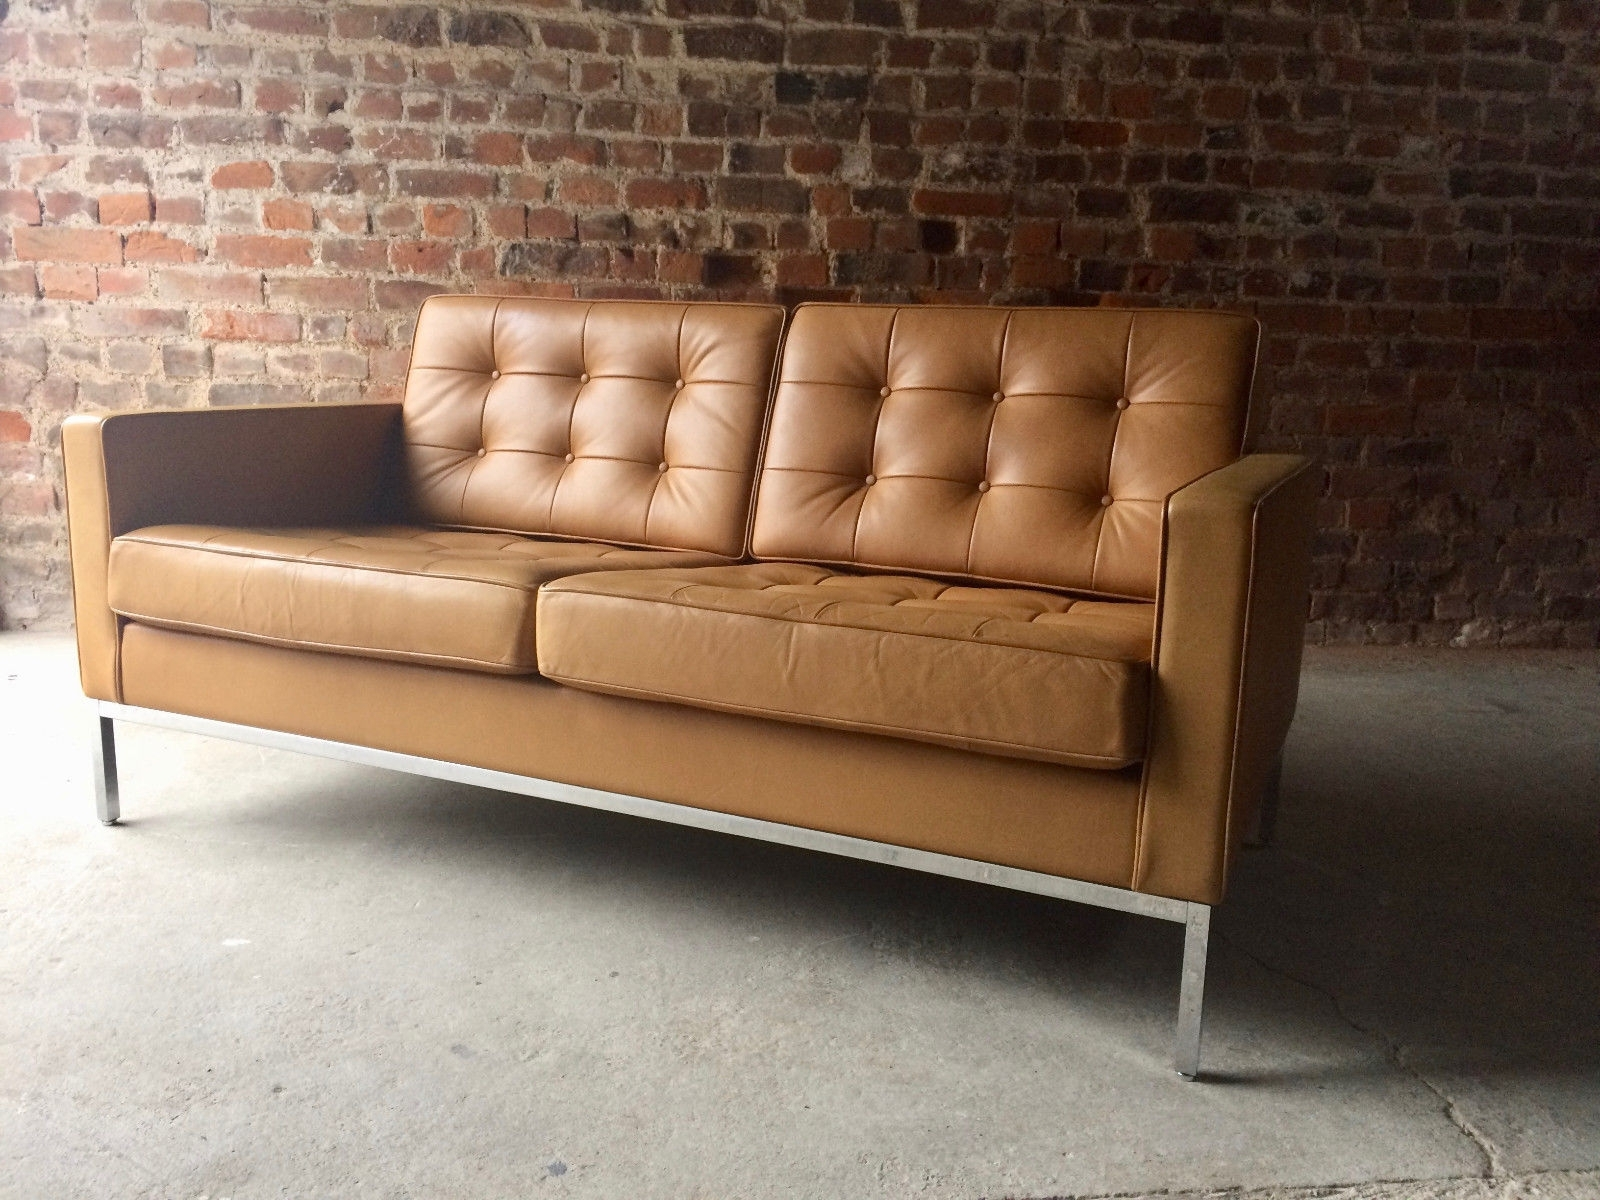 Vintage 2 Seater Leather Sofaflorence Knoll For Knoll For Sale With 2017 Florence Knoll Leather Sofas (View 15 of 15)